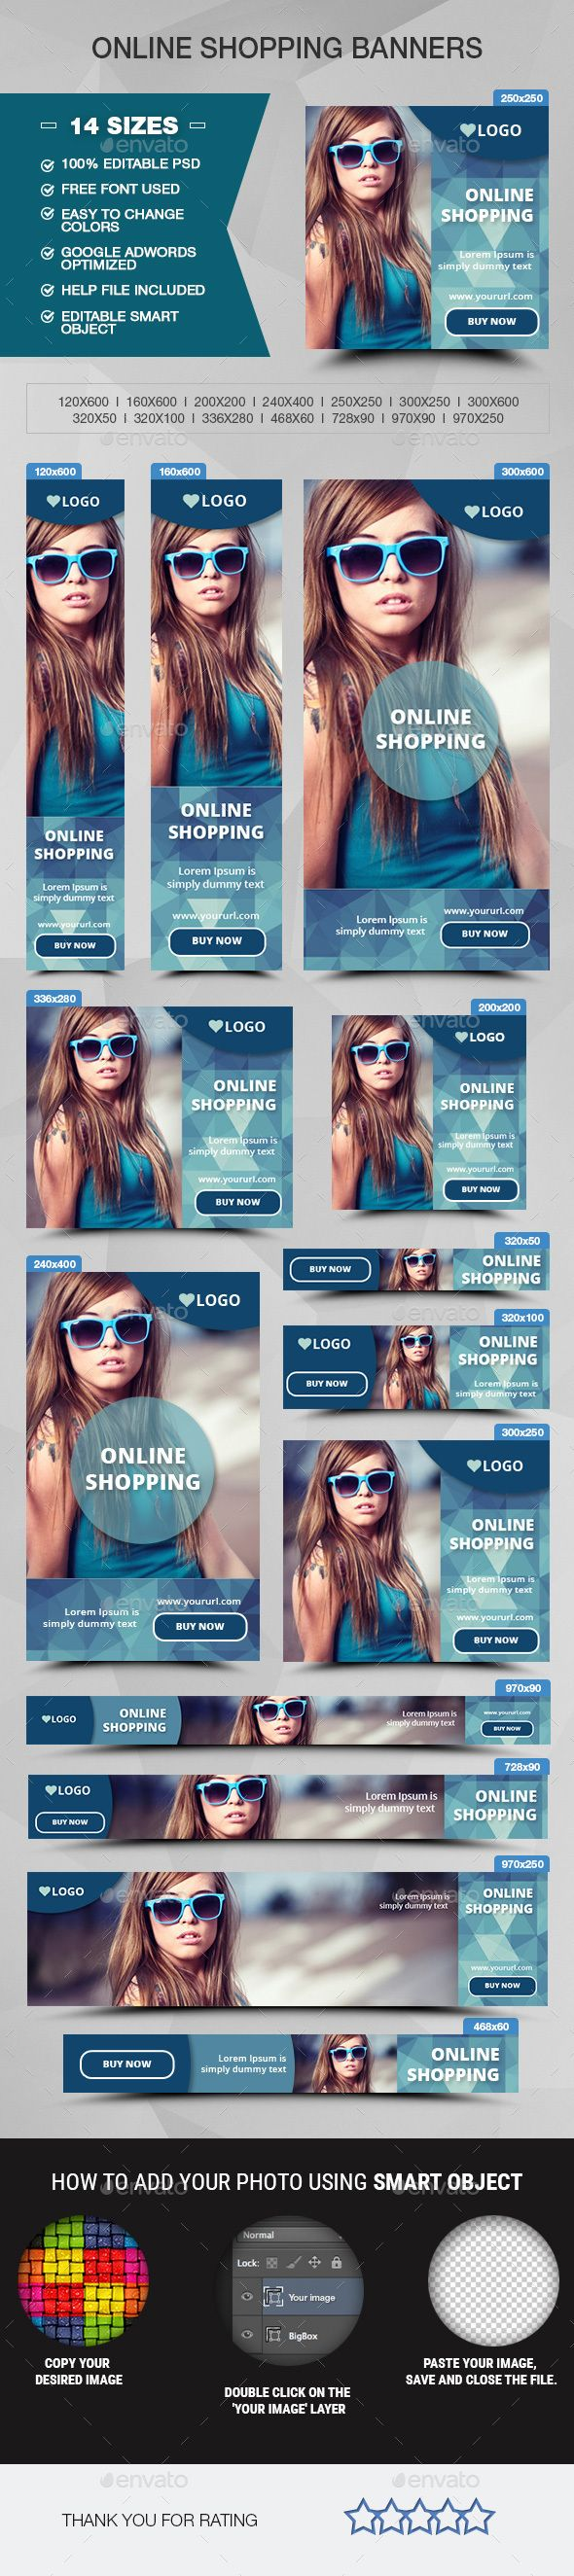 Online Shopping Banners — Photoshop PSD #metro design #shopping • Available here → https://graphicriver.net/item/online-shopping-banners/14278134?ref=pxcr